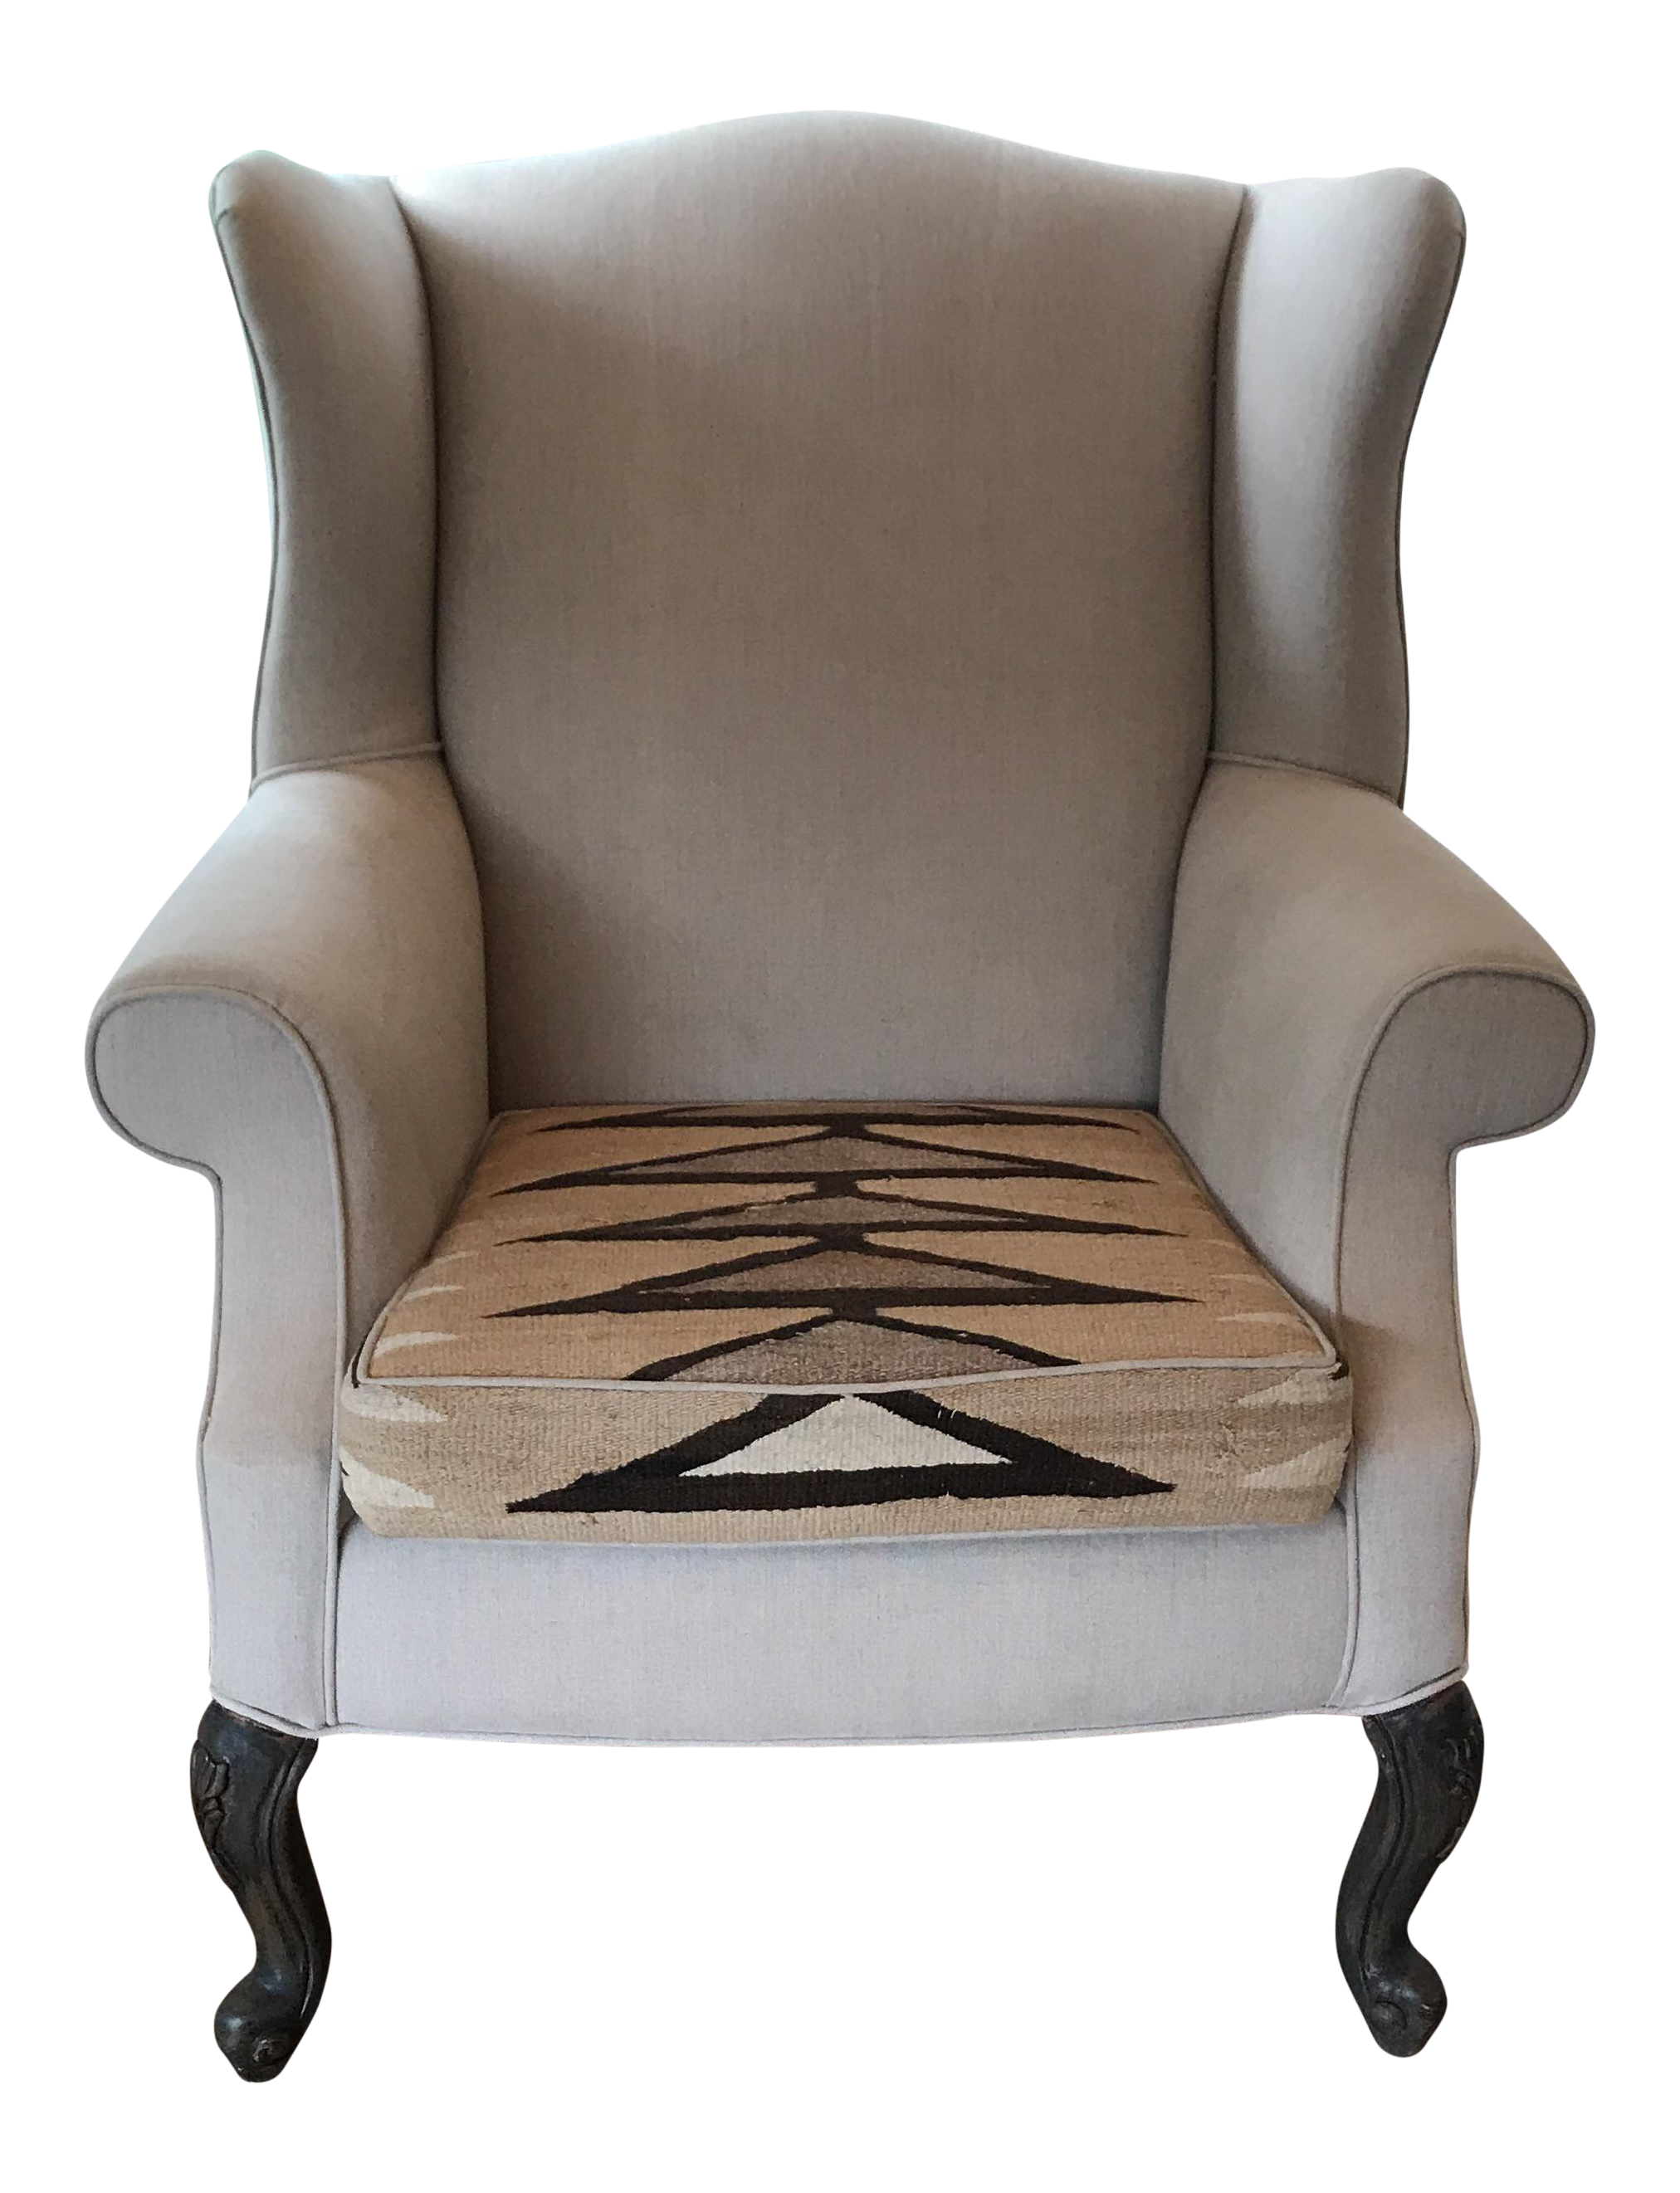 Superieur Vintage Wingback Chair Linen U0026 Navajo Style Rug   Image 1 Of 10